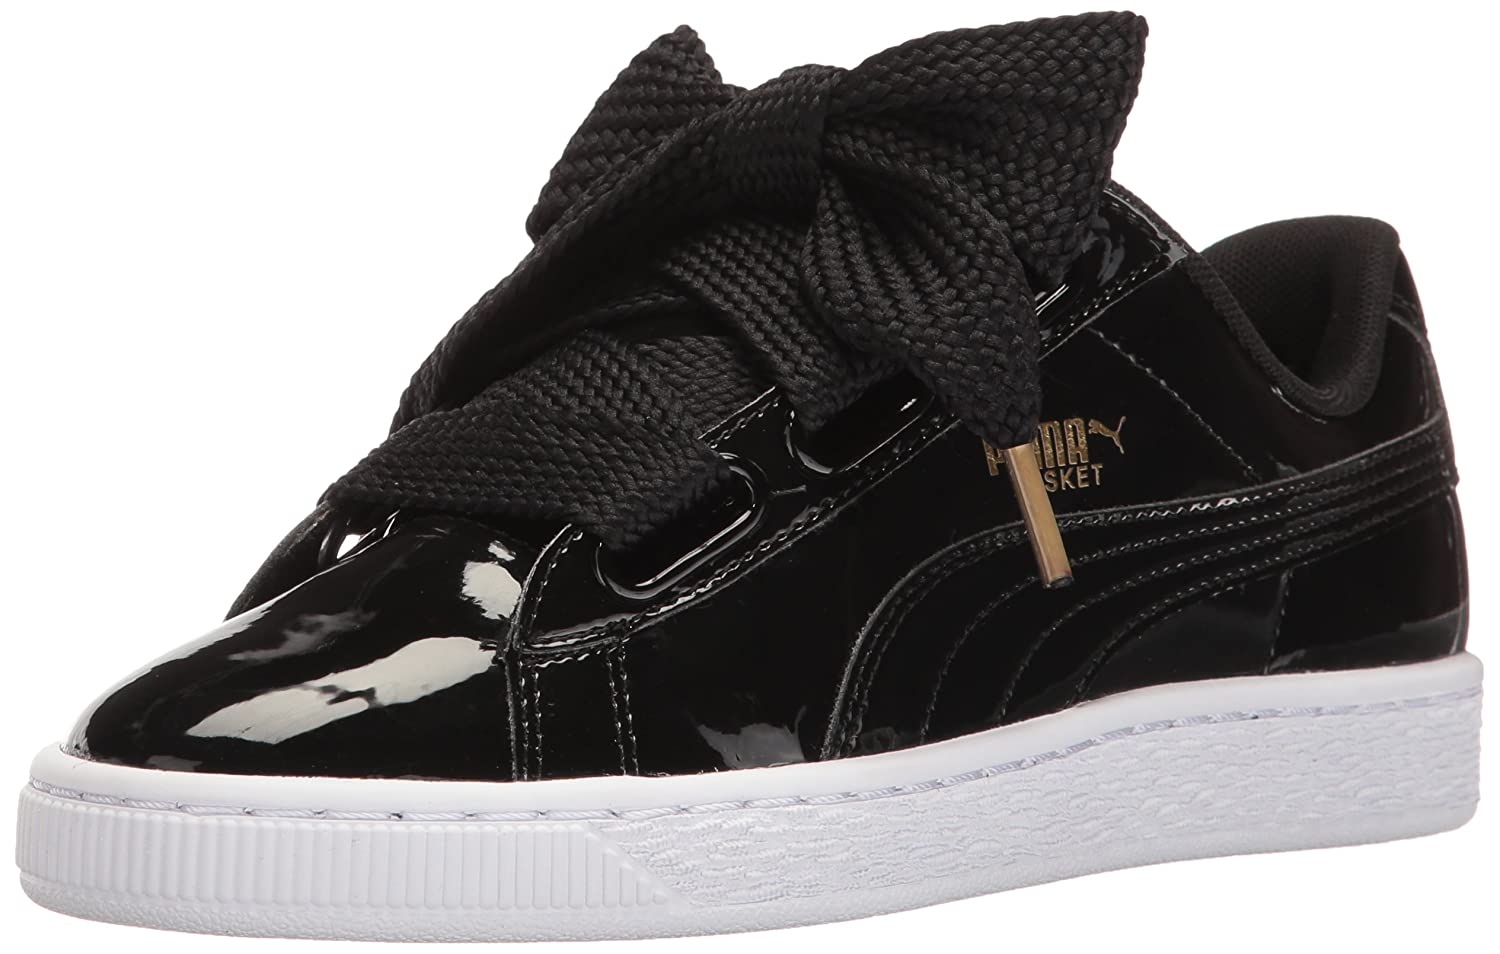 0e3037a72a9 Puma Women s Basket Heart Patent WN s Sneaker  Amazon.co.uk  Shoes   Bags